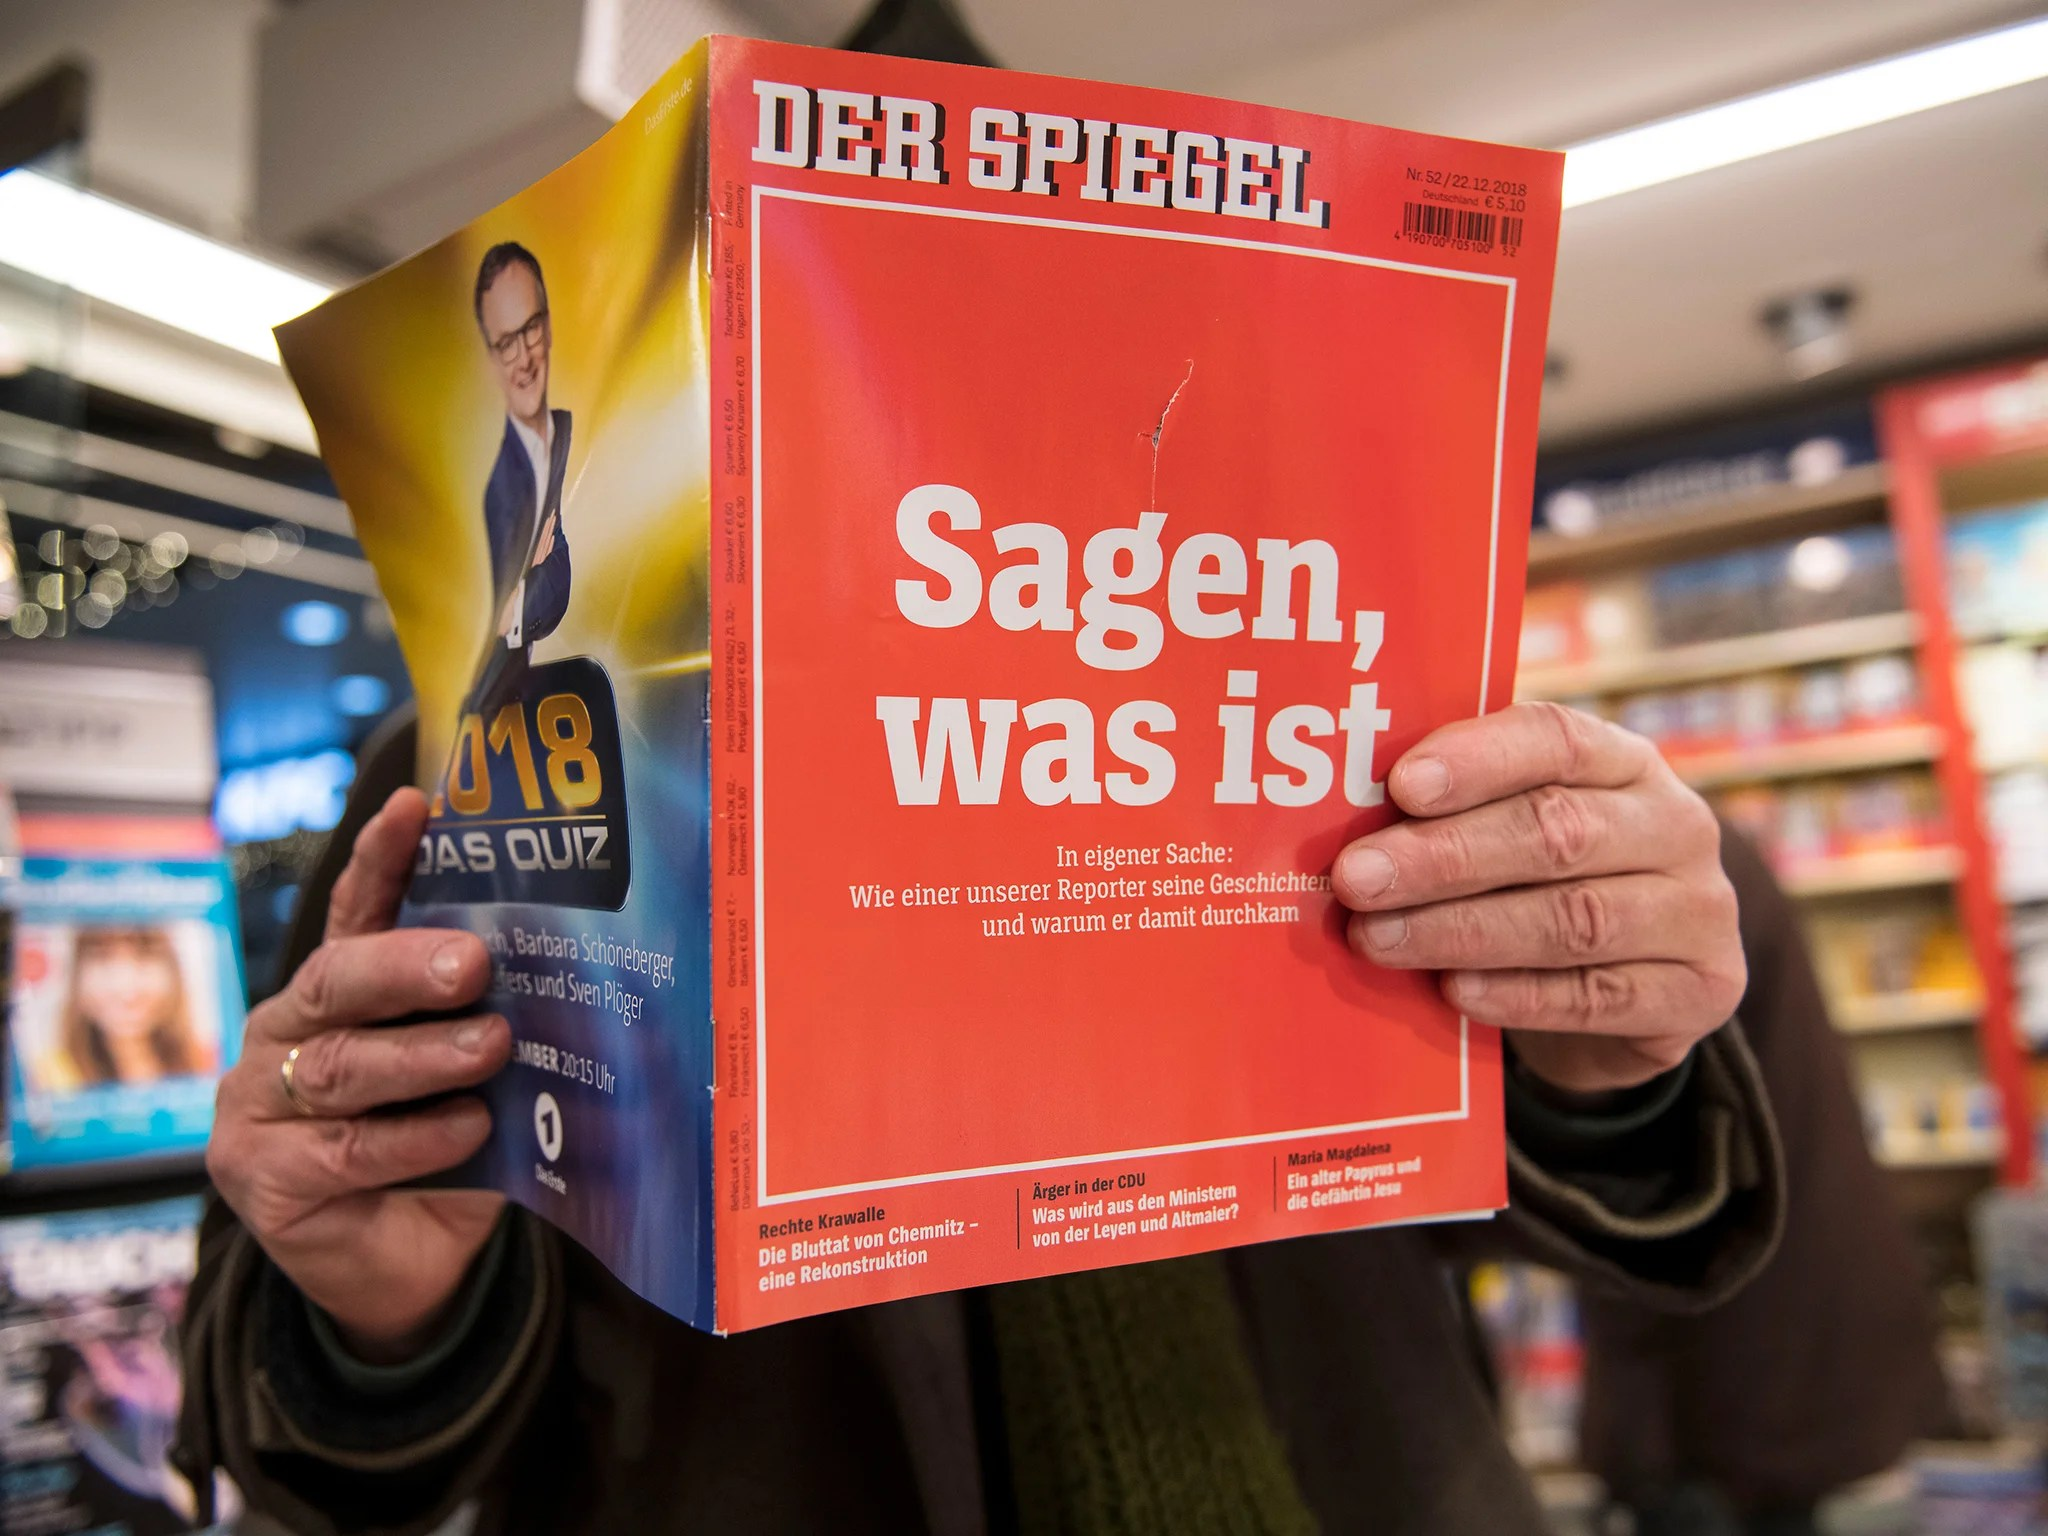 Spiegel 24 Der Spiegel Reporter Accused Of Making Up Stories Appealed For